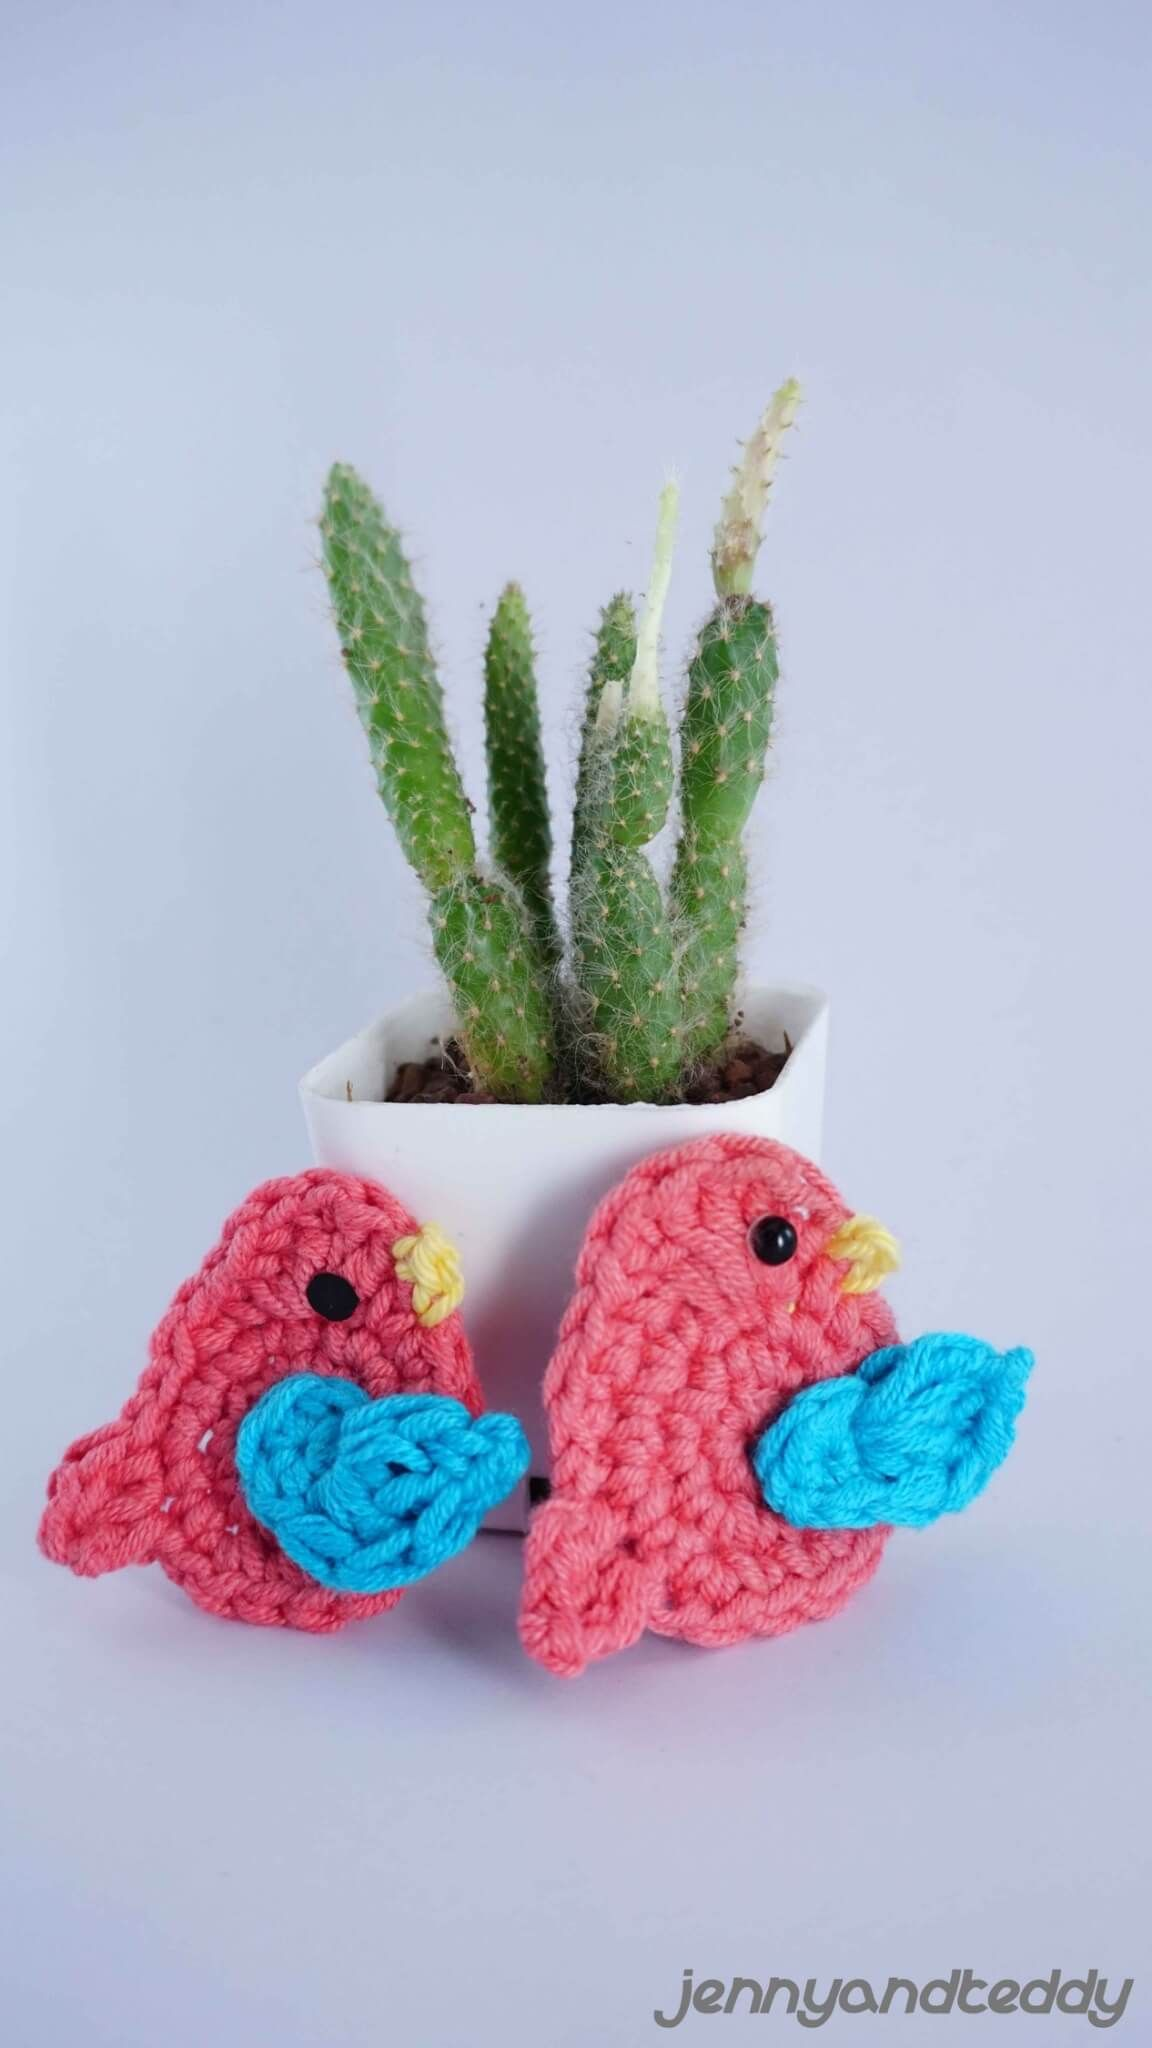 Free Crochet Applique Patterns Best Design Inspiration